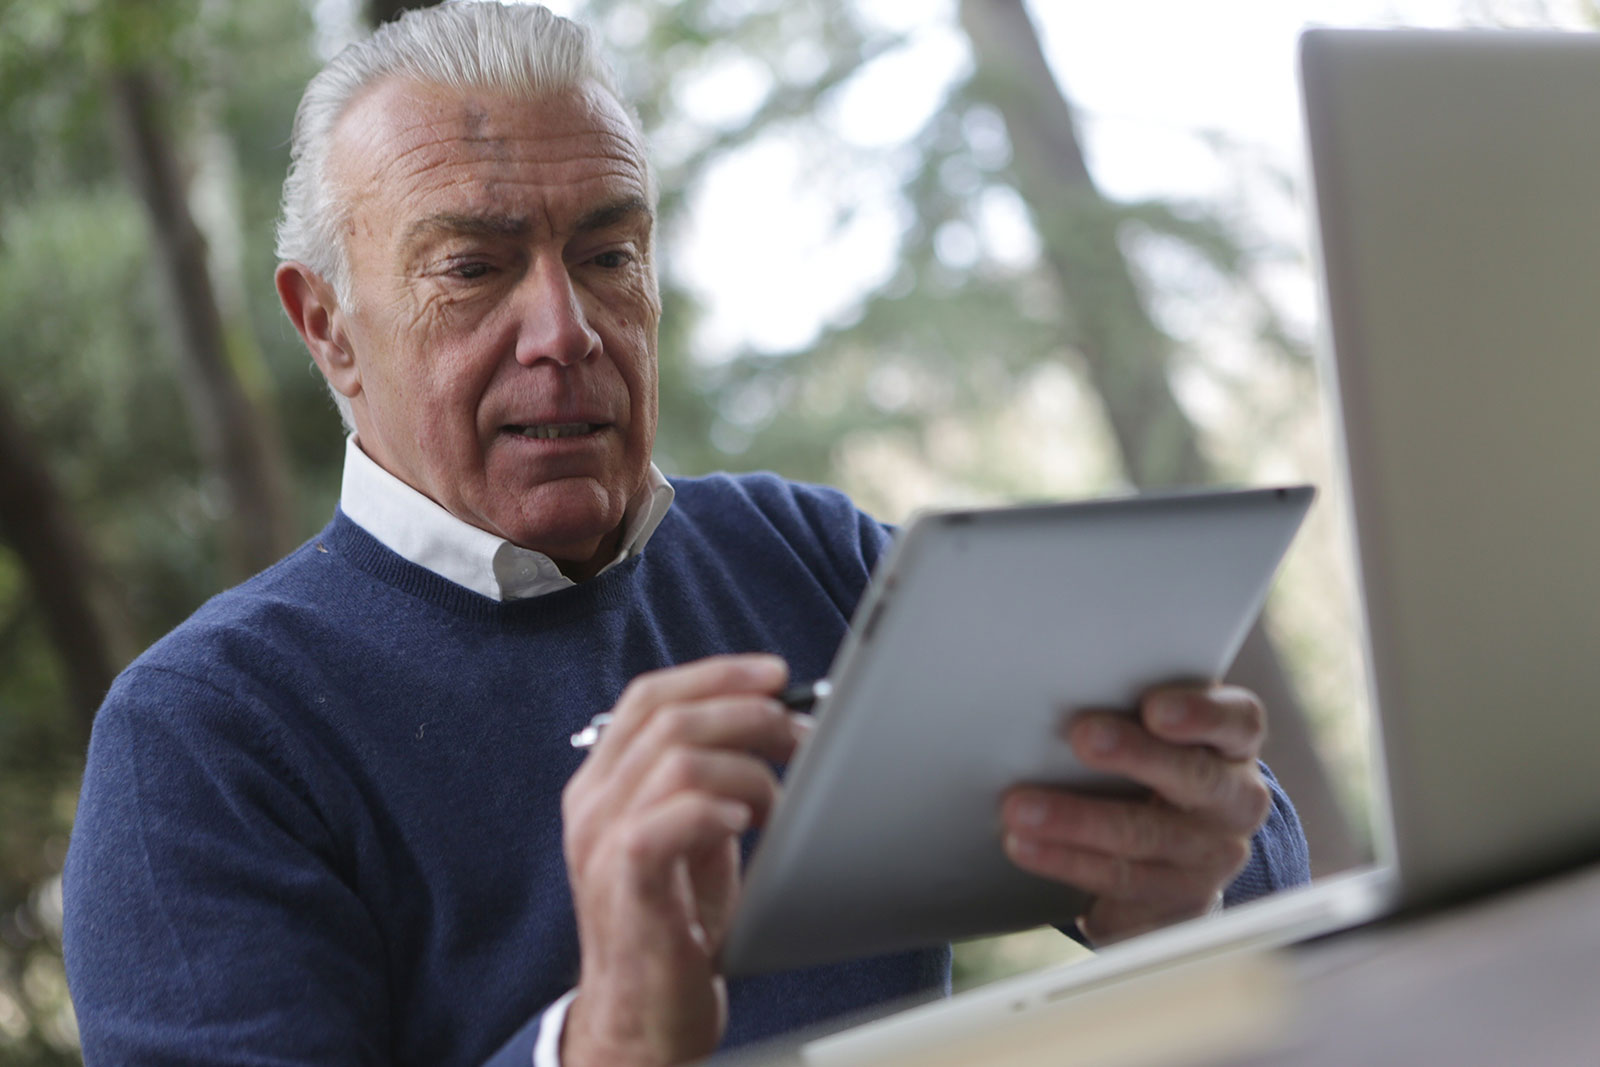 Senior male outside working on a tablet